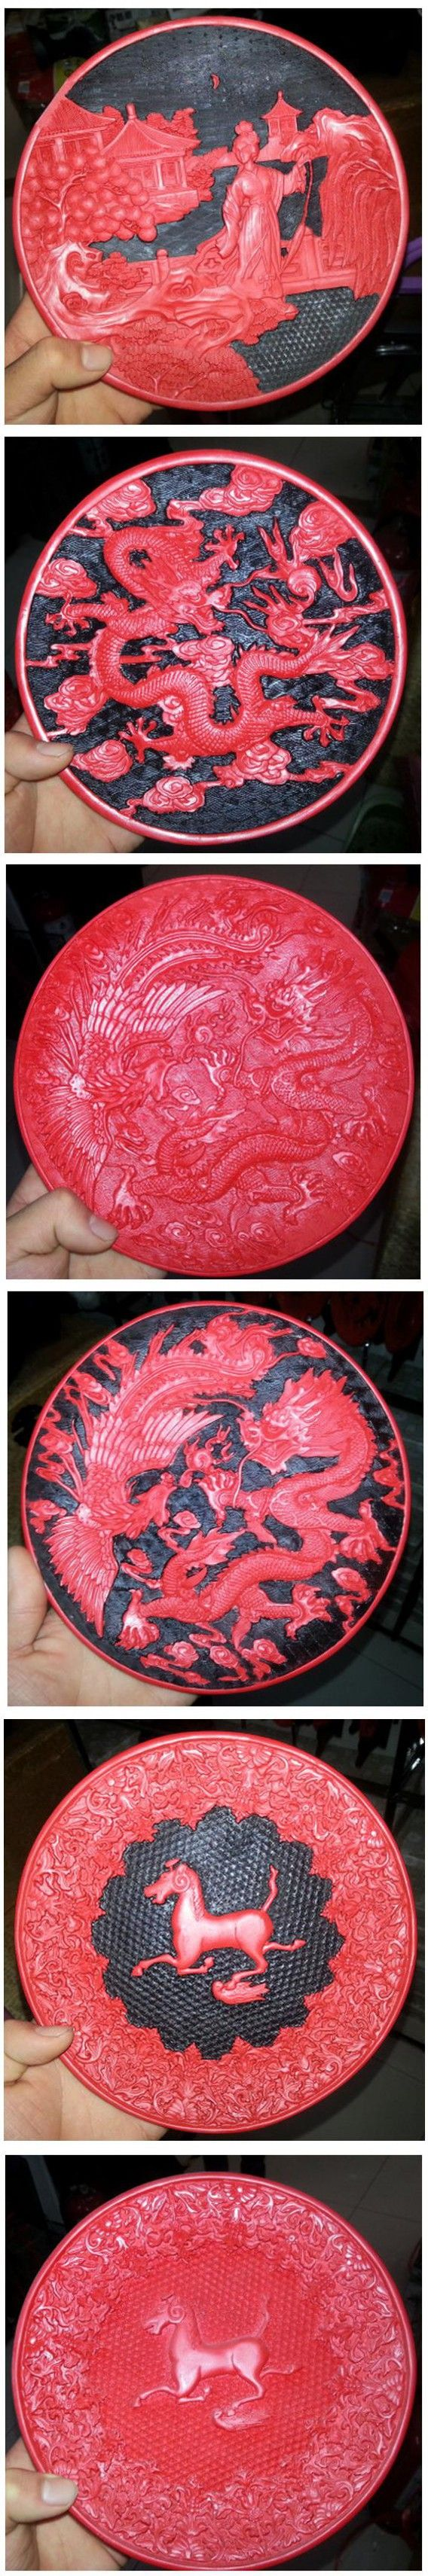 Dragon Plate Home Decoration Chinese Retro Fashion Handmade Red Carved Lacquerware Exquisite $43.8